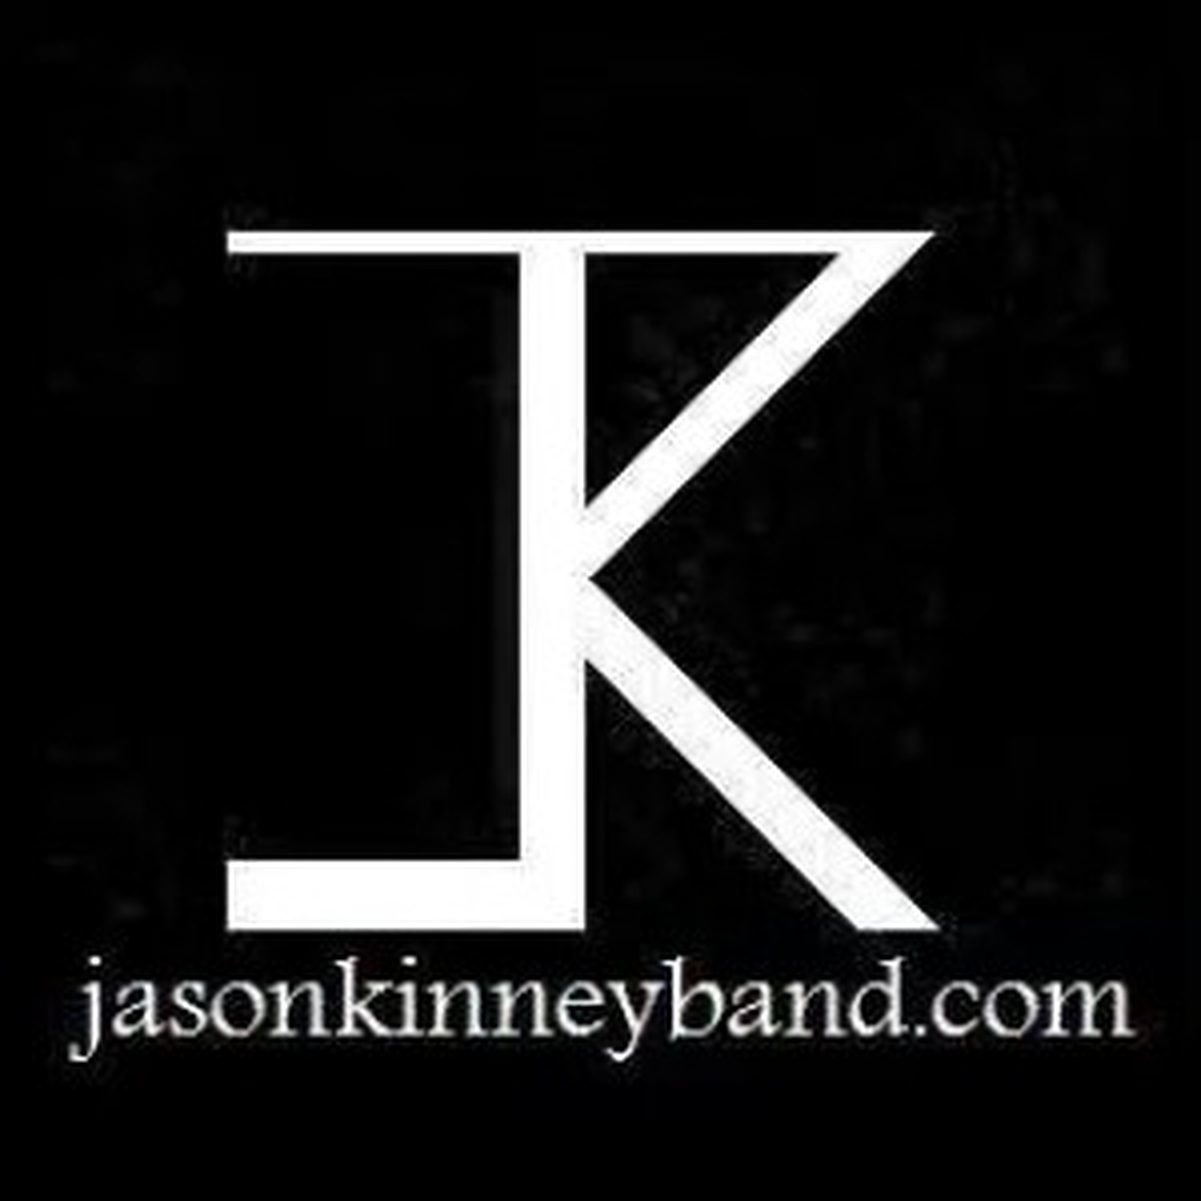 Jason Kinney Band